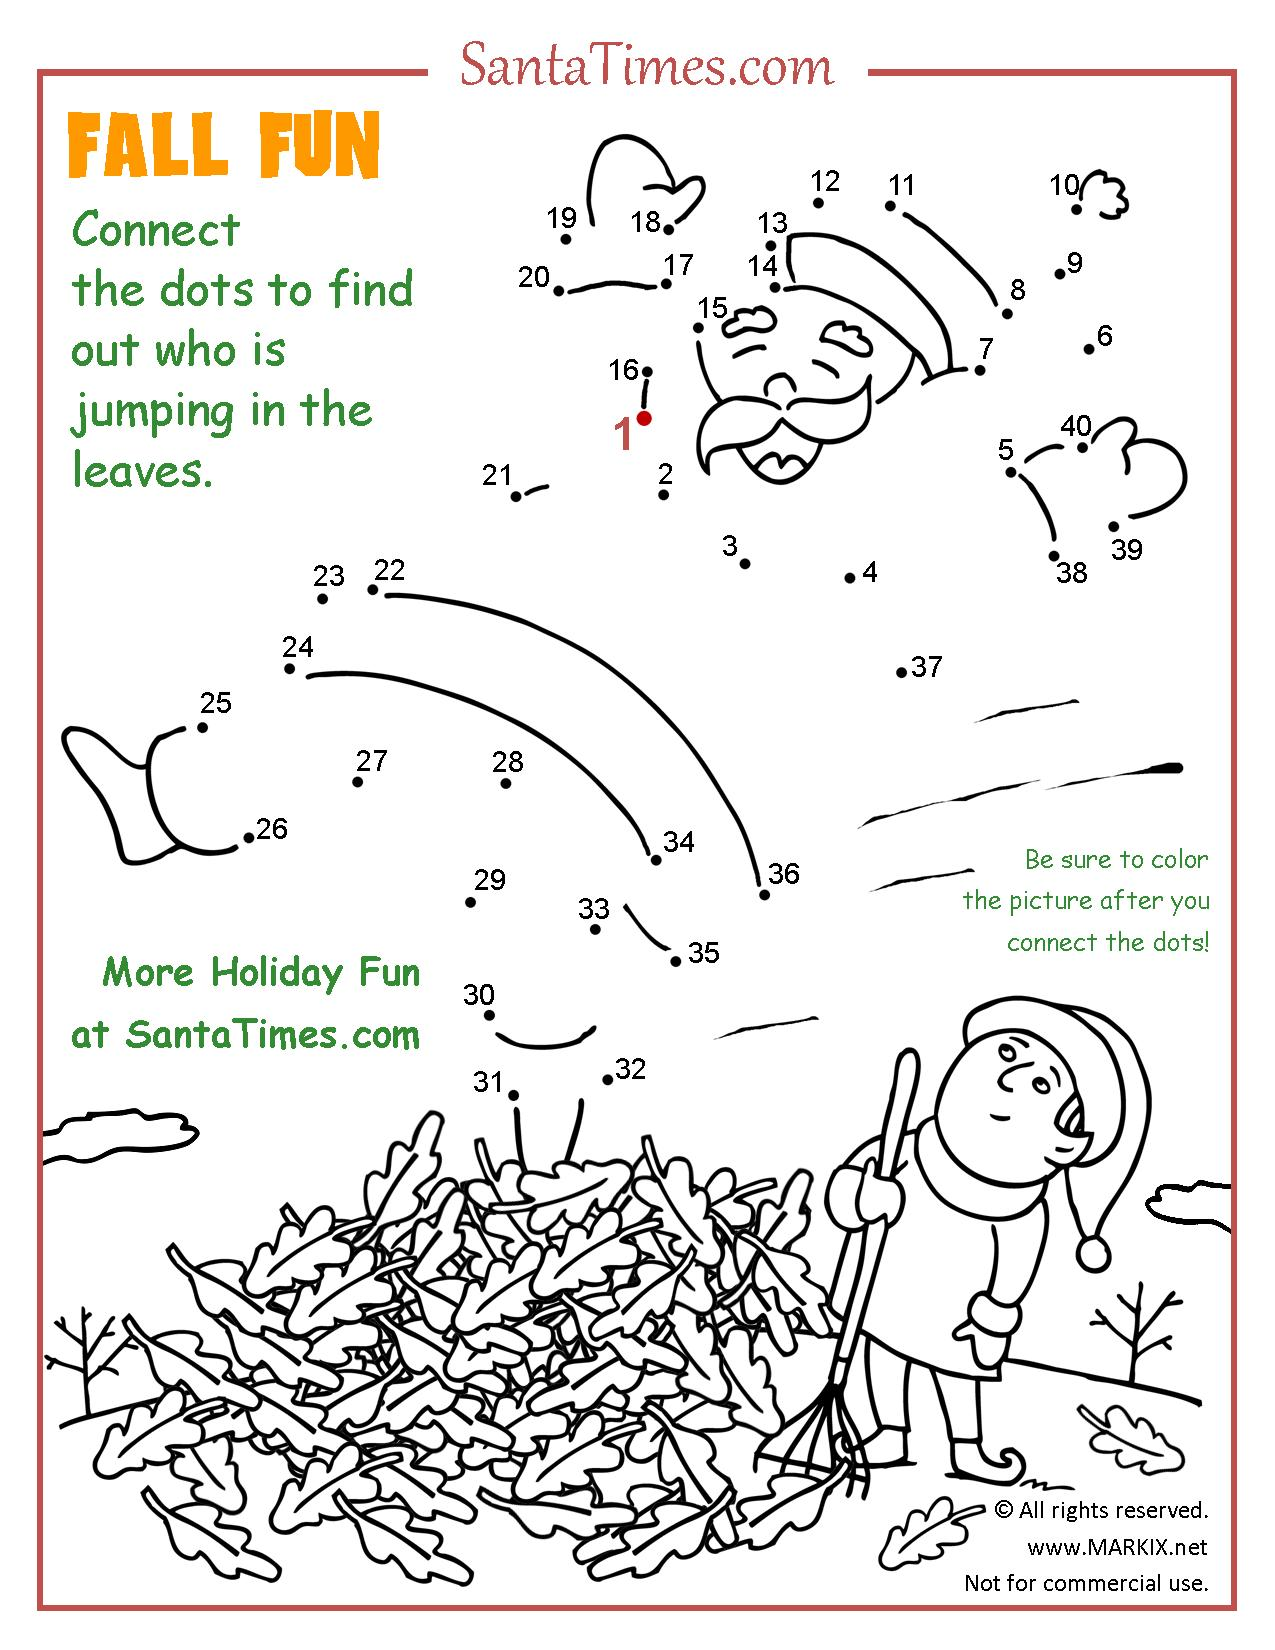 Fall Fun At The North Pole Printable Dot To Dot Connect